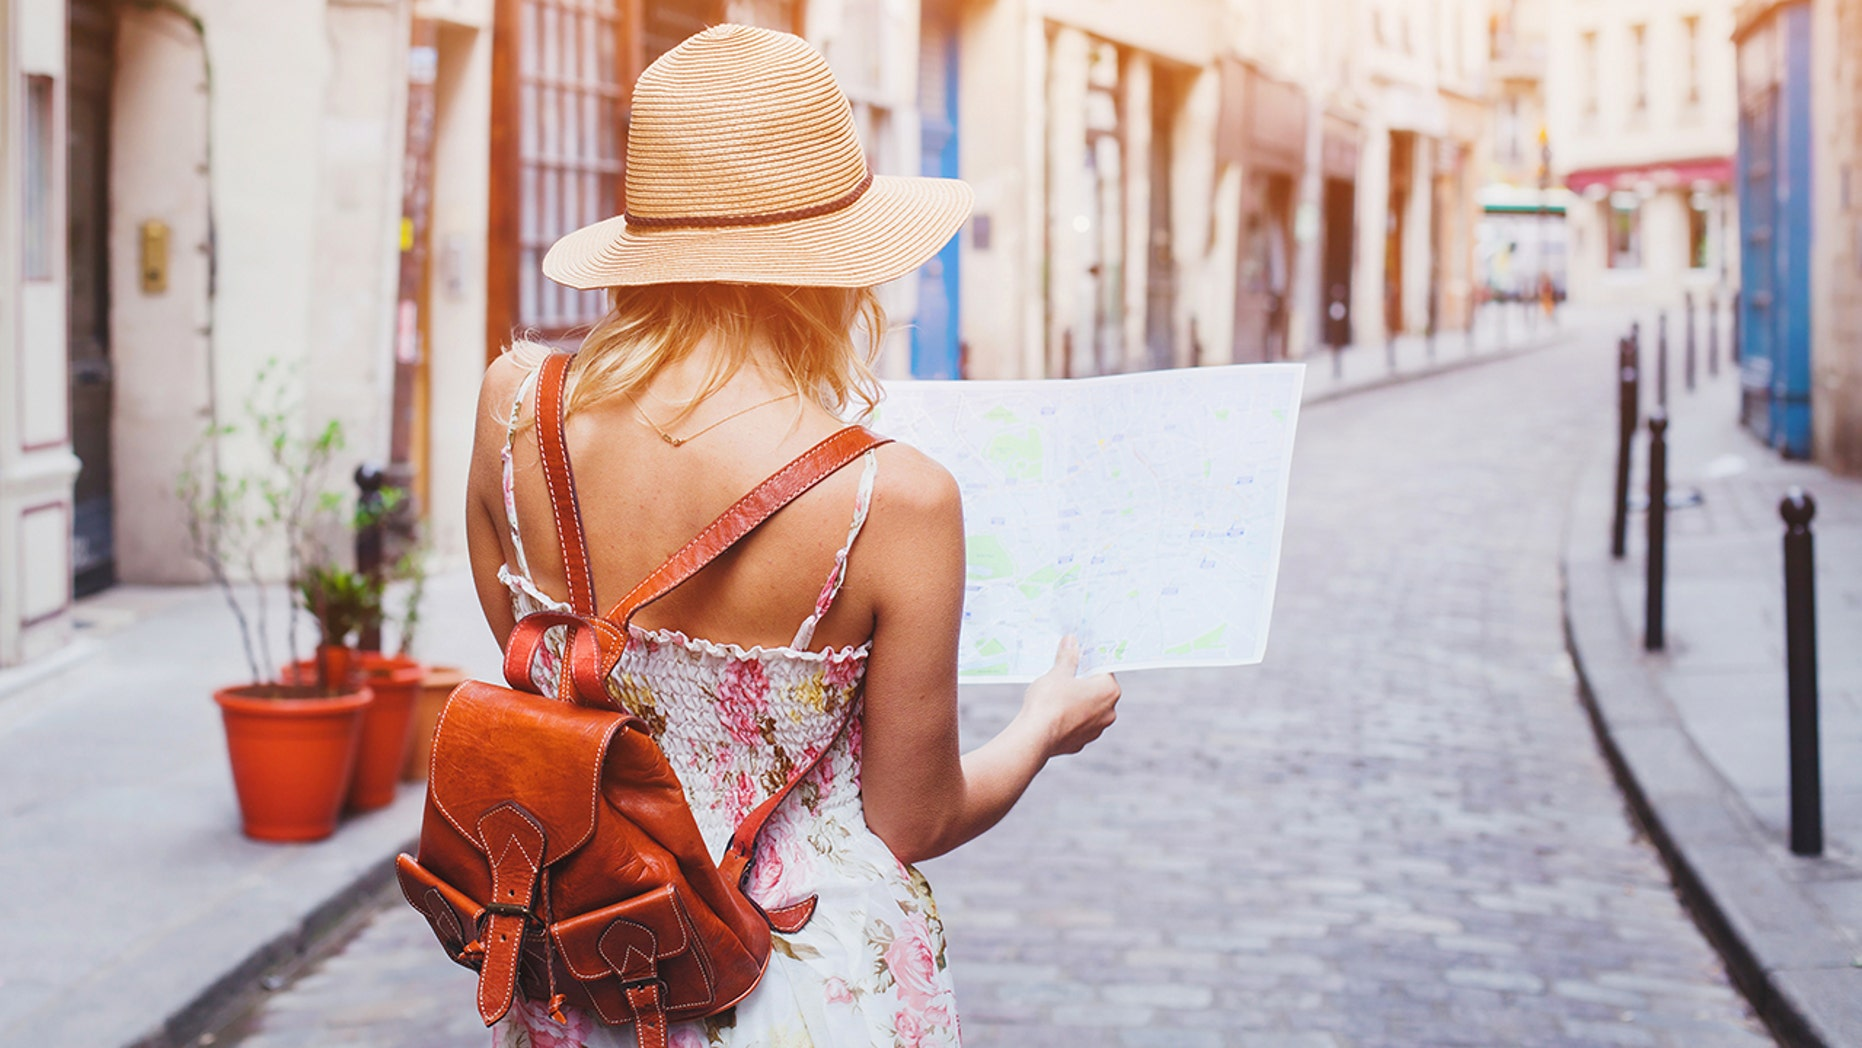 Millenials are embracing solo travel abroad.